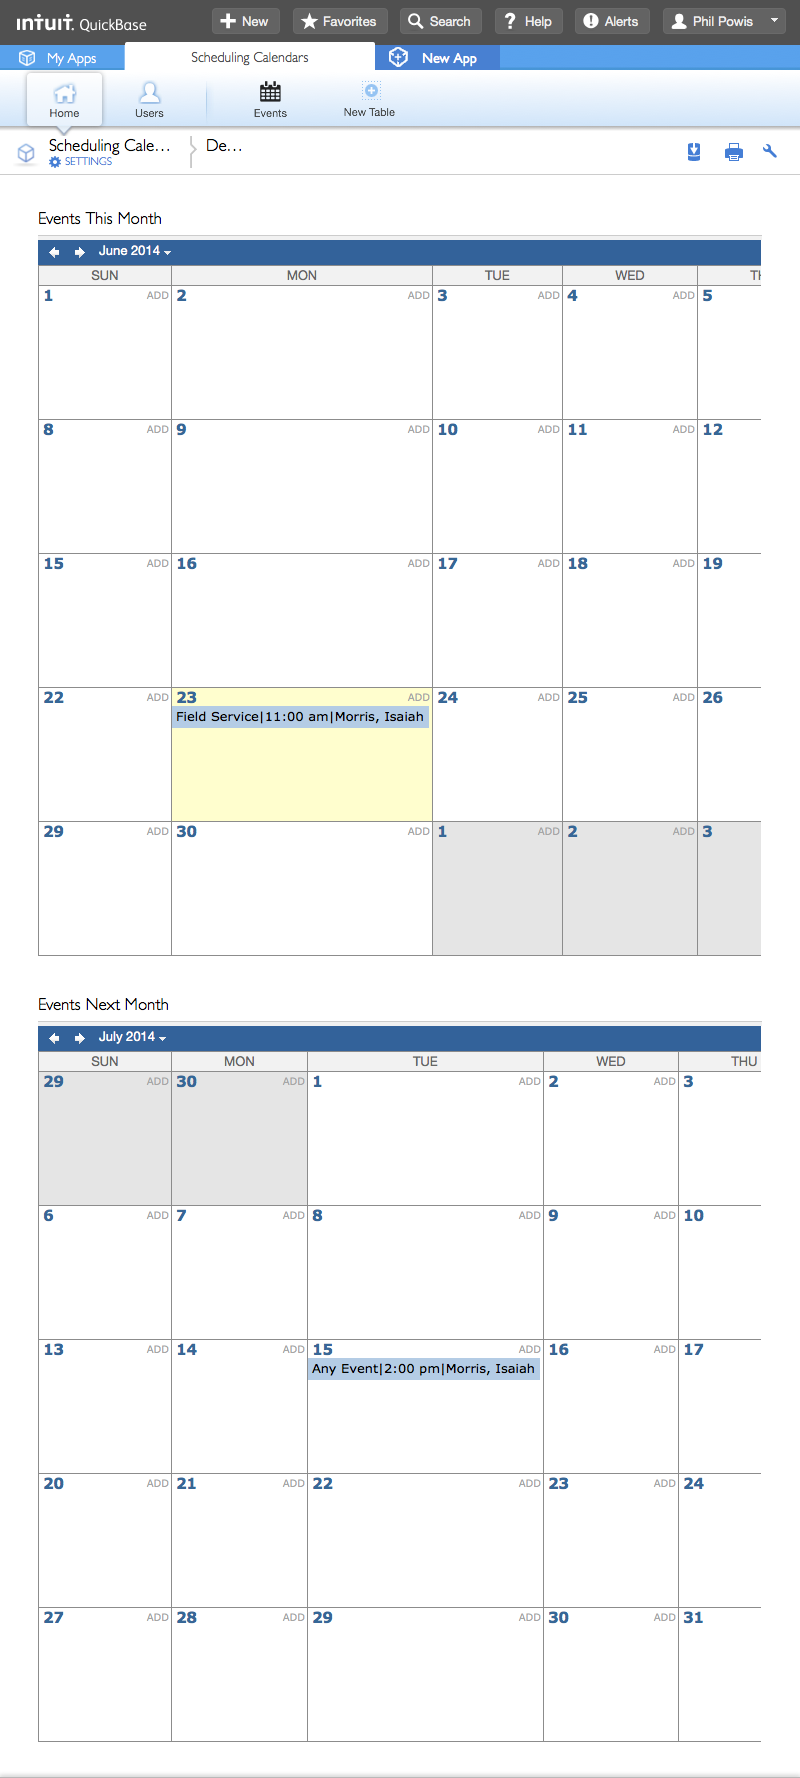 scheduling calendars quick base